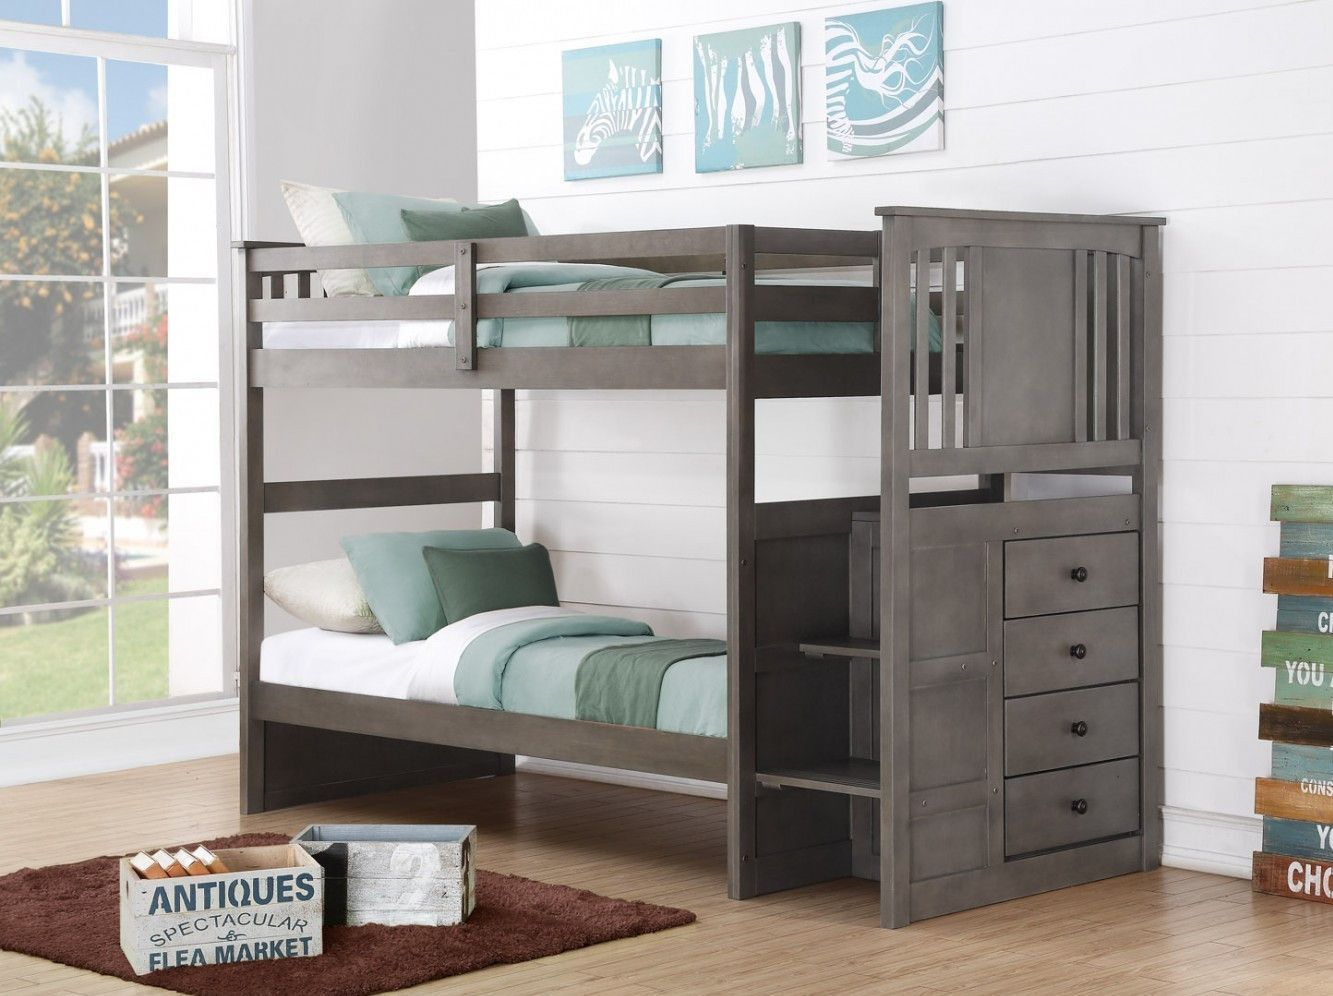 Kids Beds With Storage For Girls To Gray Bunk Beds For Boys Or Girls With Stairs And Storage Drawers